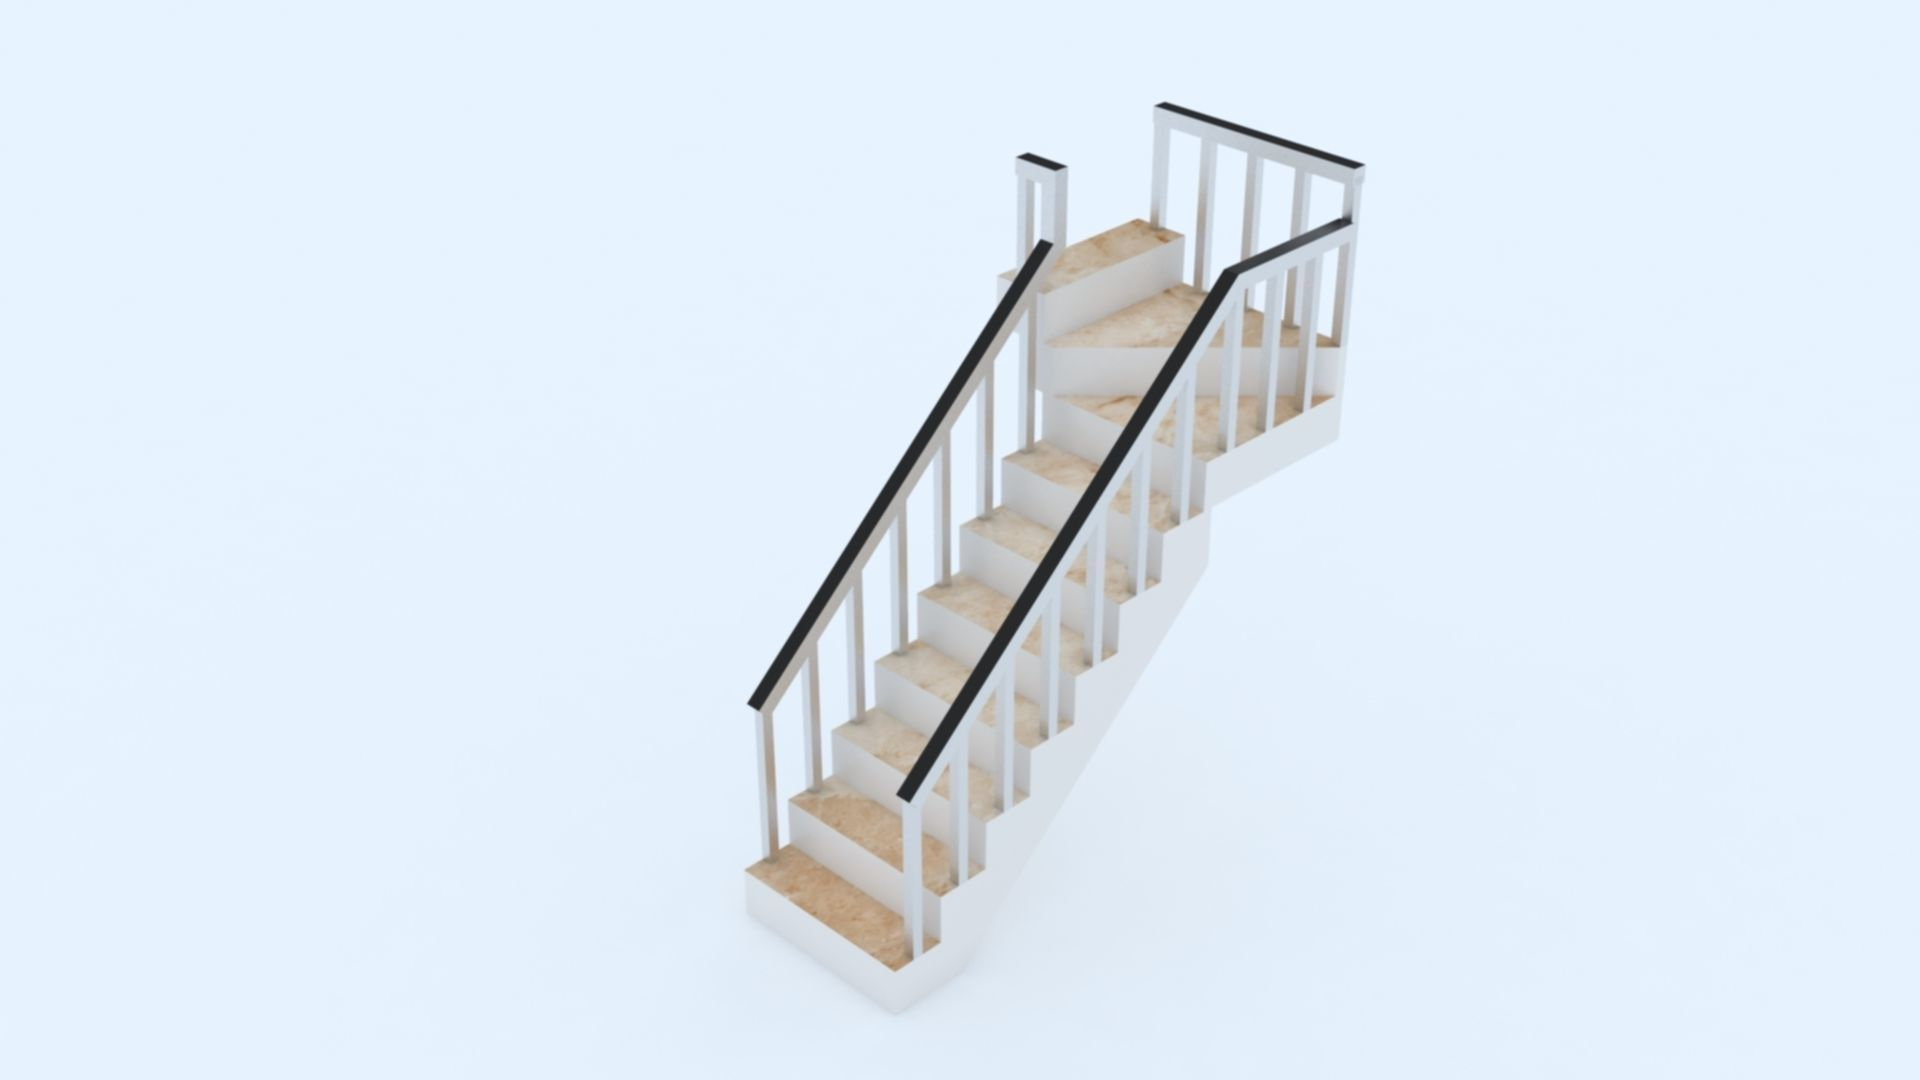 3d model stairs l shape vr ar low poly max obj 3ds fbx dxf stl cgtrader